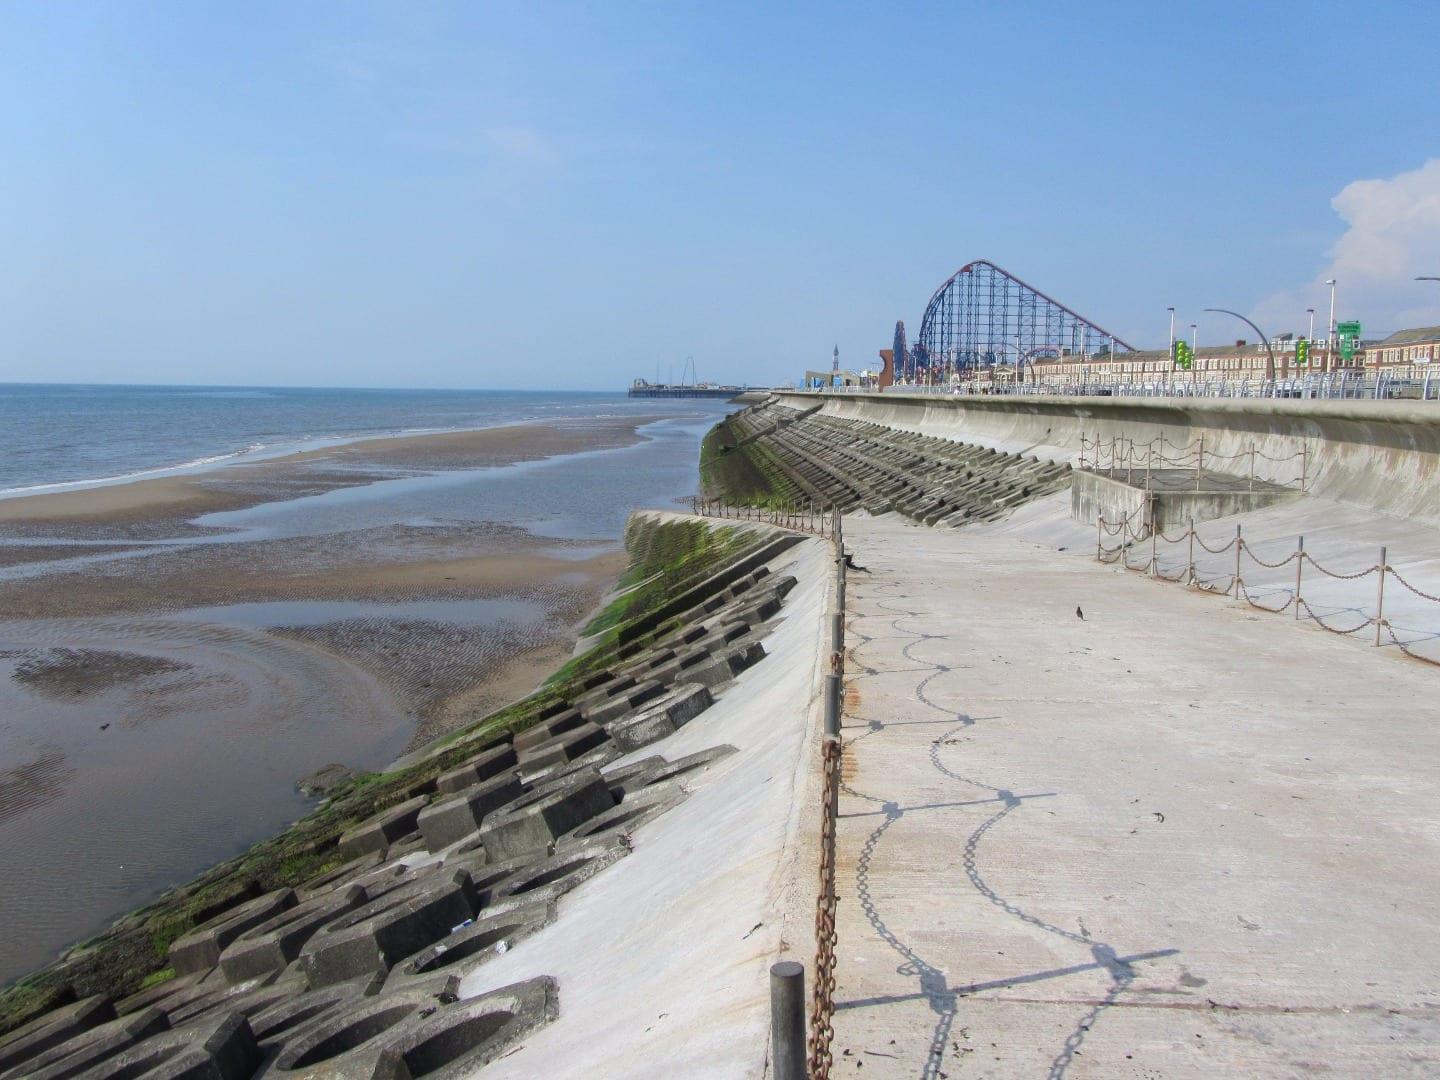 Blackpool seafront - Looking towards South Pier and the Pleasure Beach from Blackpool South